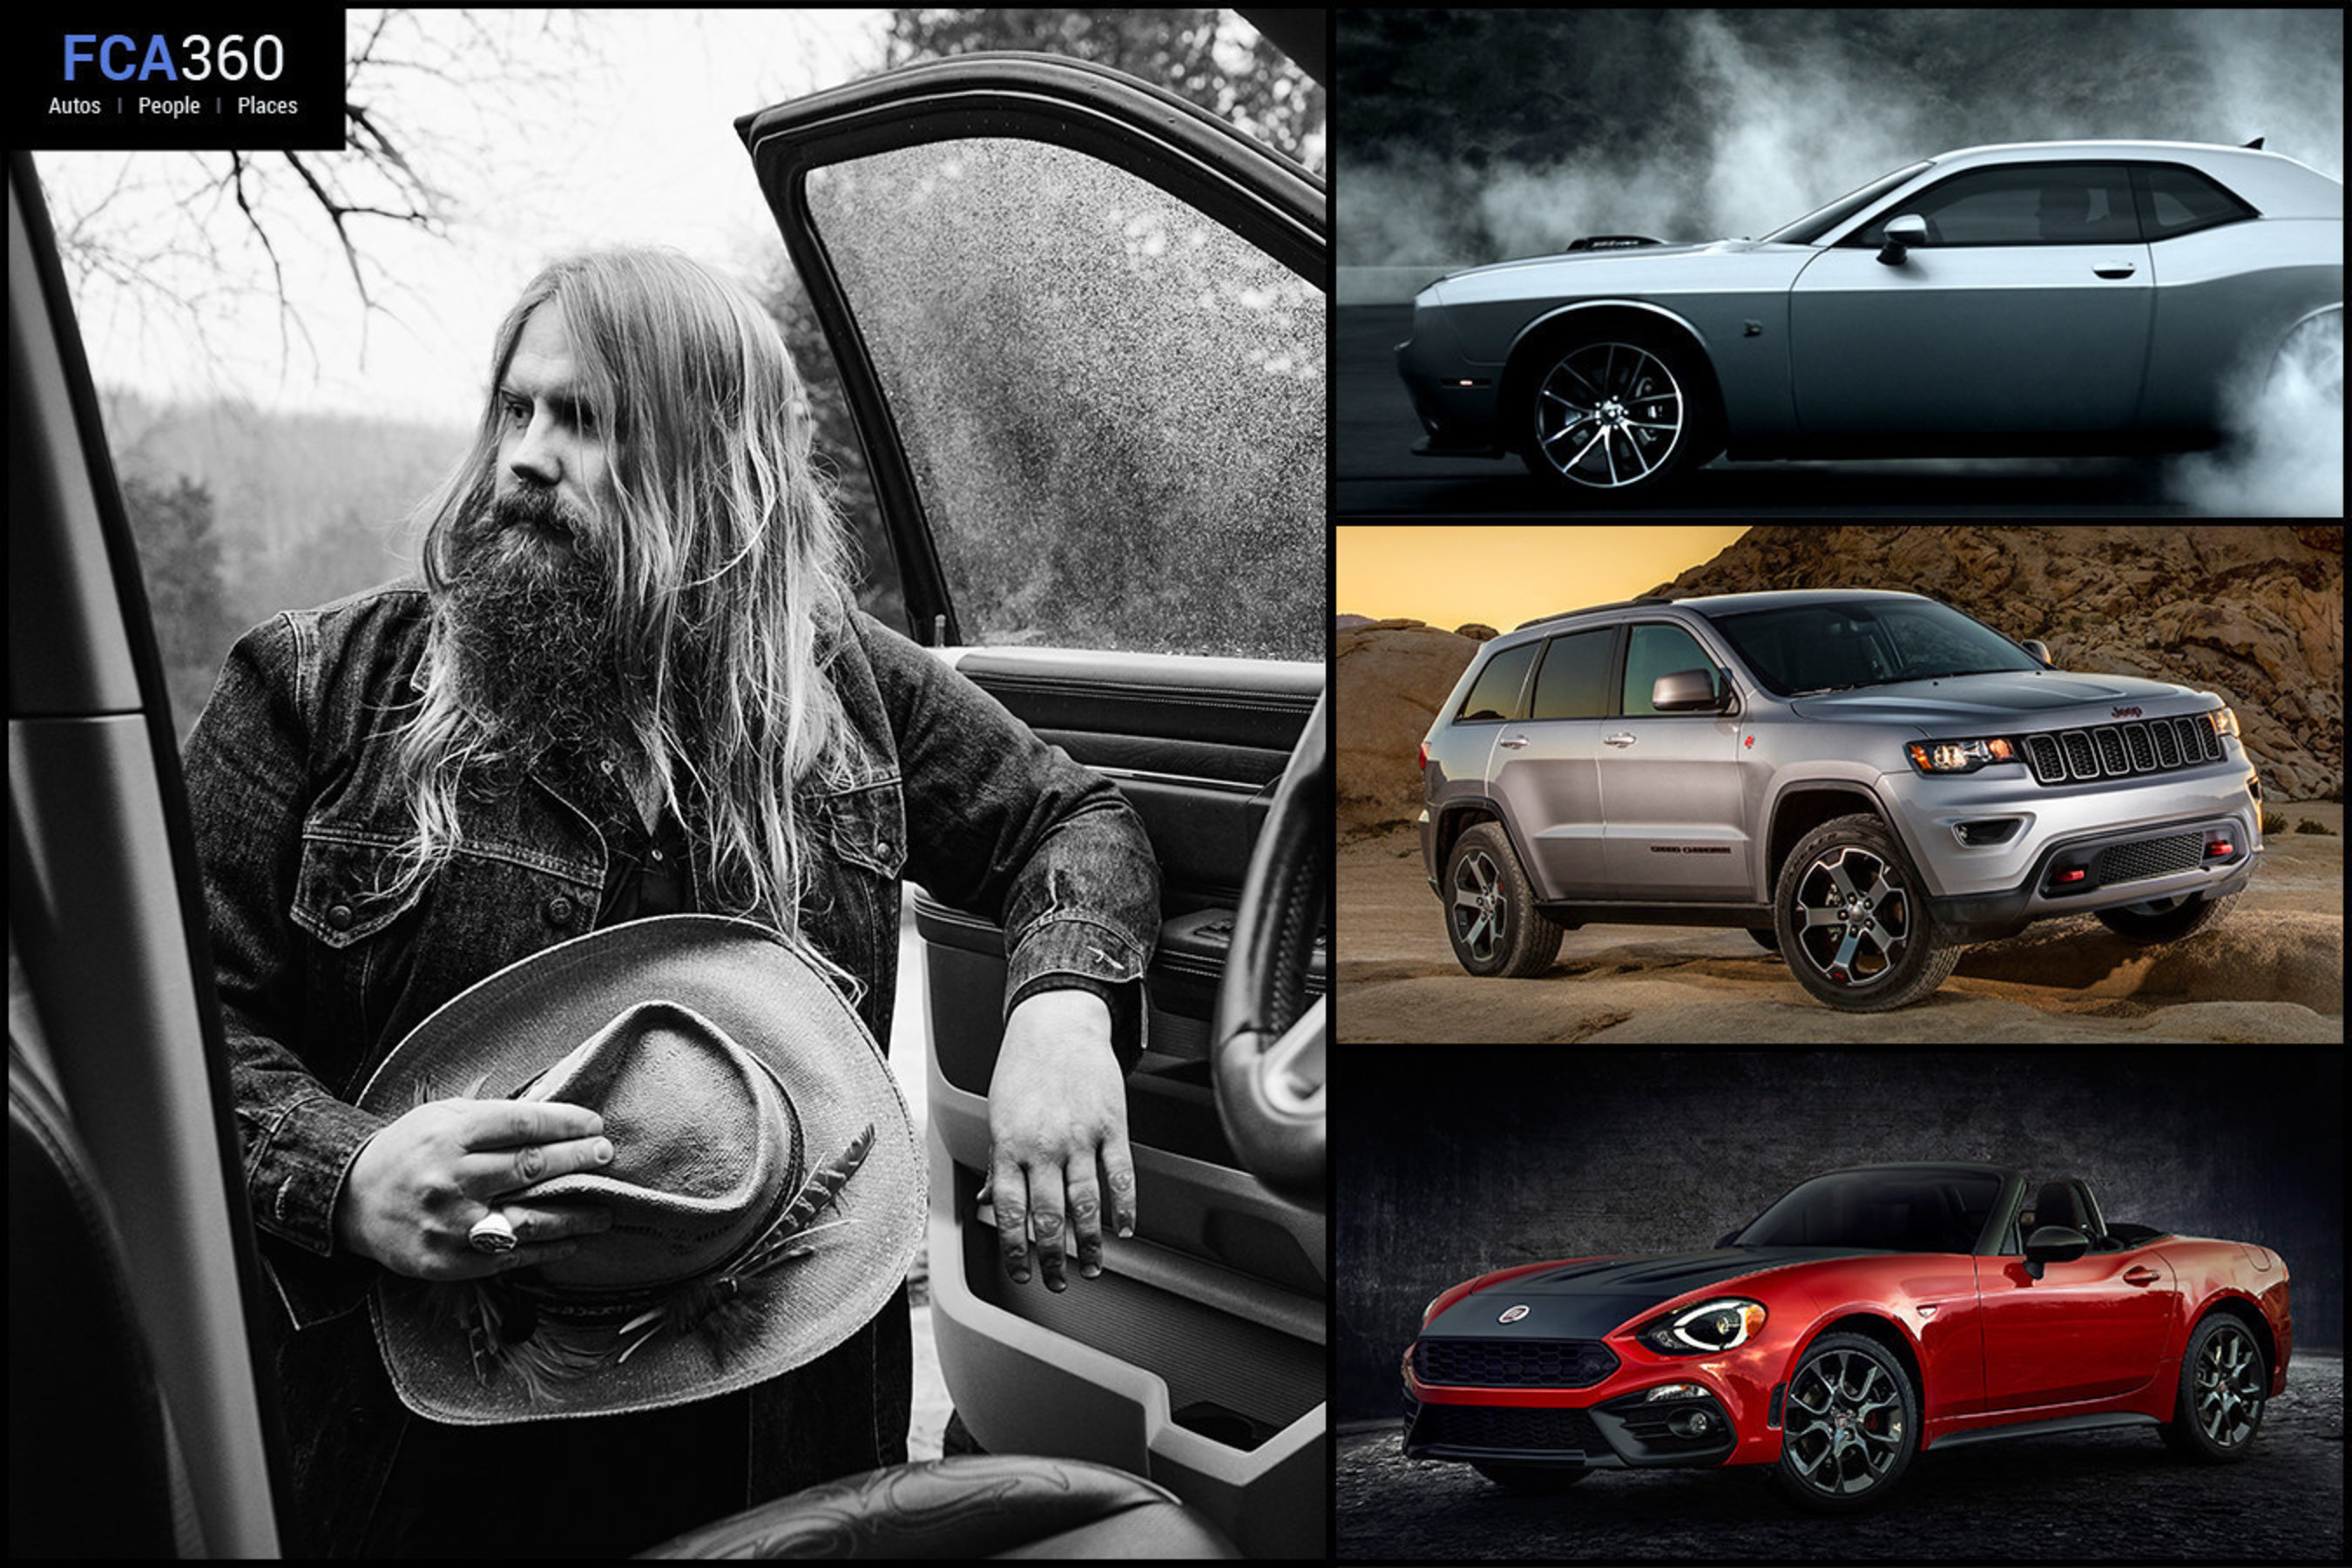 Check out the April issue of FCA360 for an inside look into FCA US LLC. This month's edition includes the story of country music singer Chris Stapleton's  journey home to Paintsville, Ky.,  in a Ram Truck; how fans of the Dodge brand are fueling its social media success, and product reveals of the 2017 Jeep(R) Grand Cherokee Trailhawk, Summit and Fiat 124 Spider Abarth.